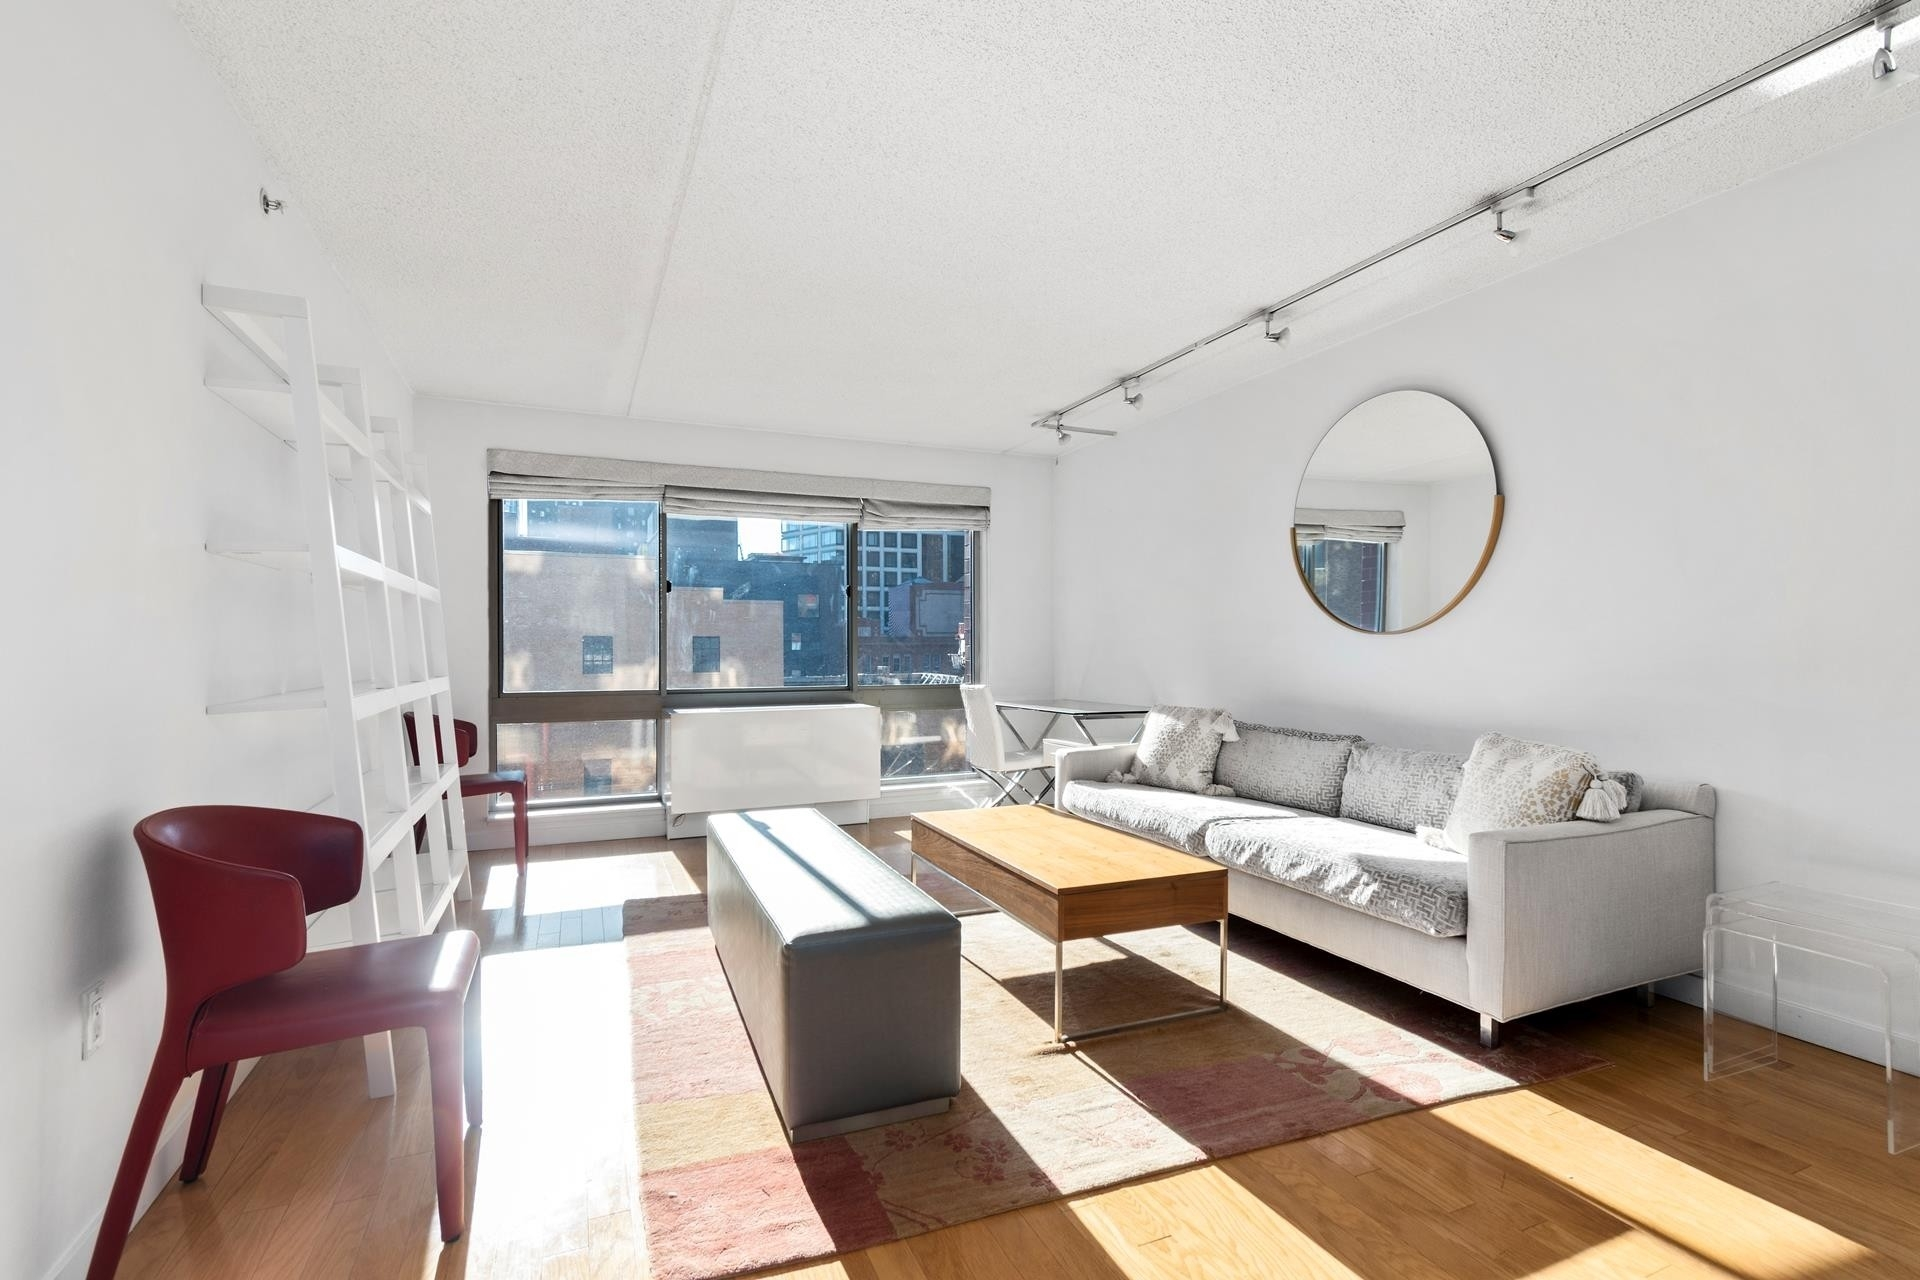 Condominium at 555W23, 555 W 23RD ST , S8D New York